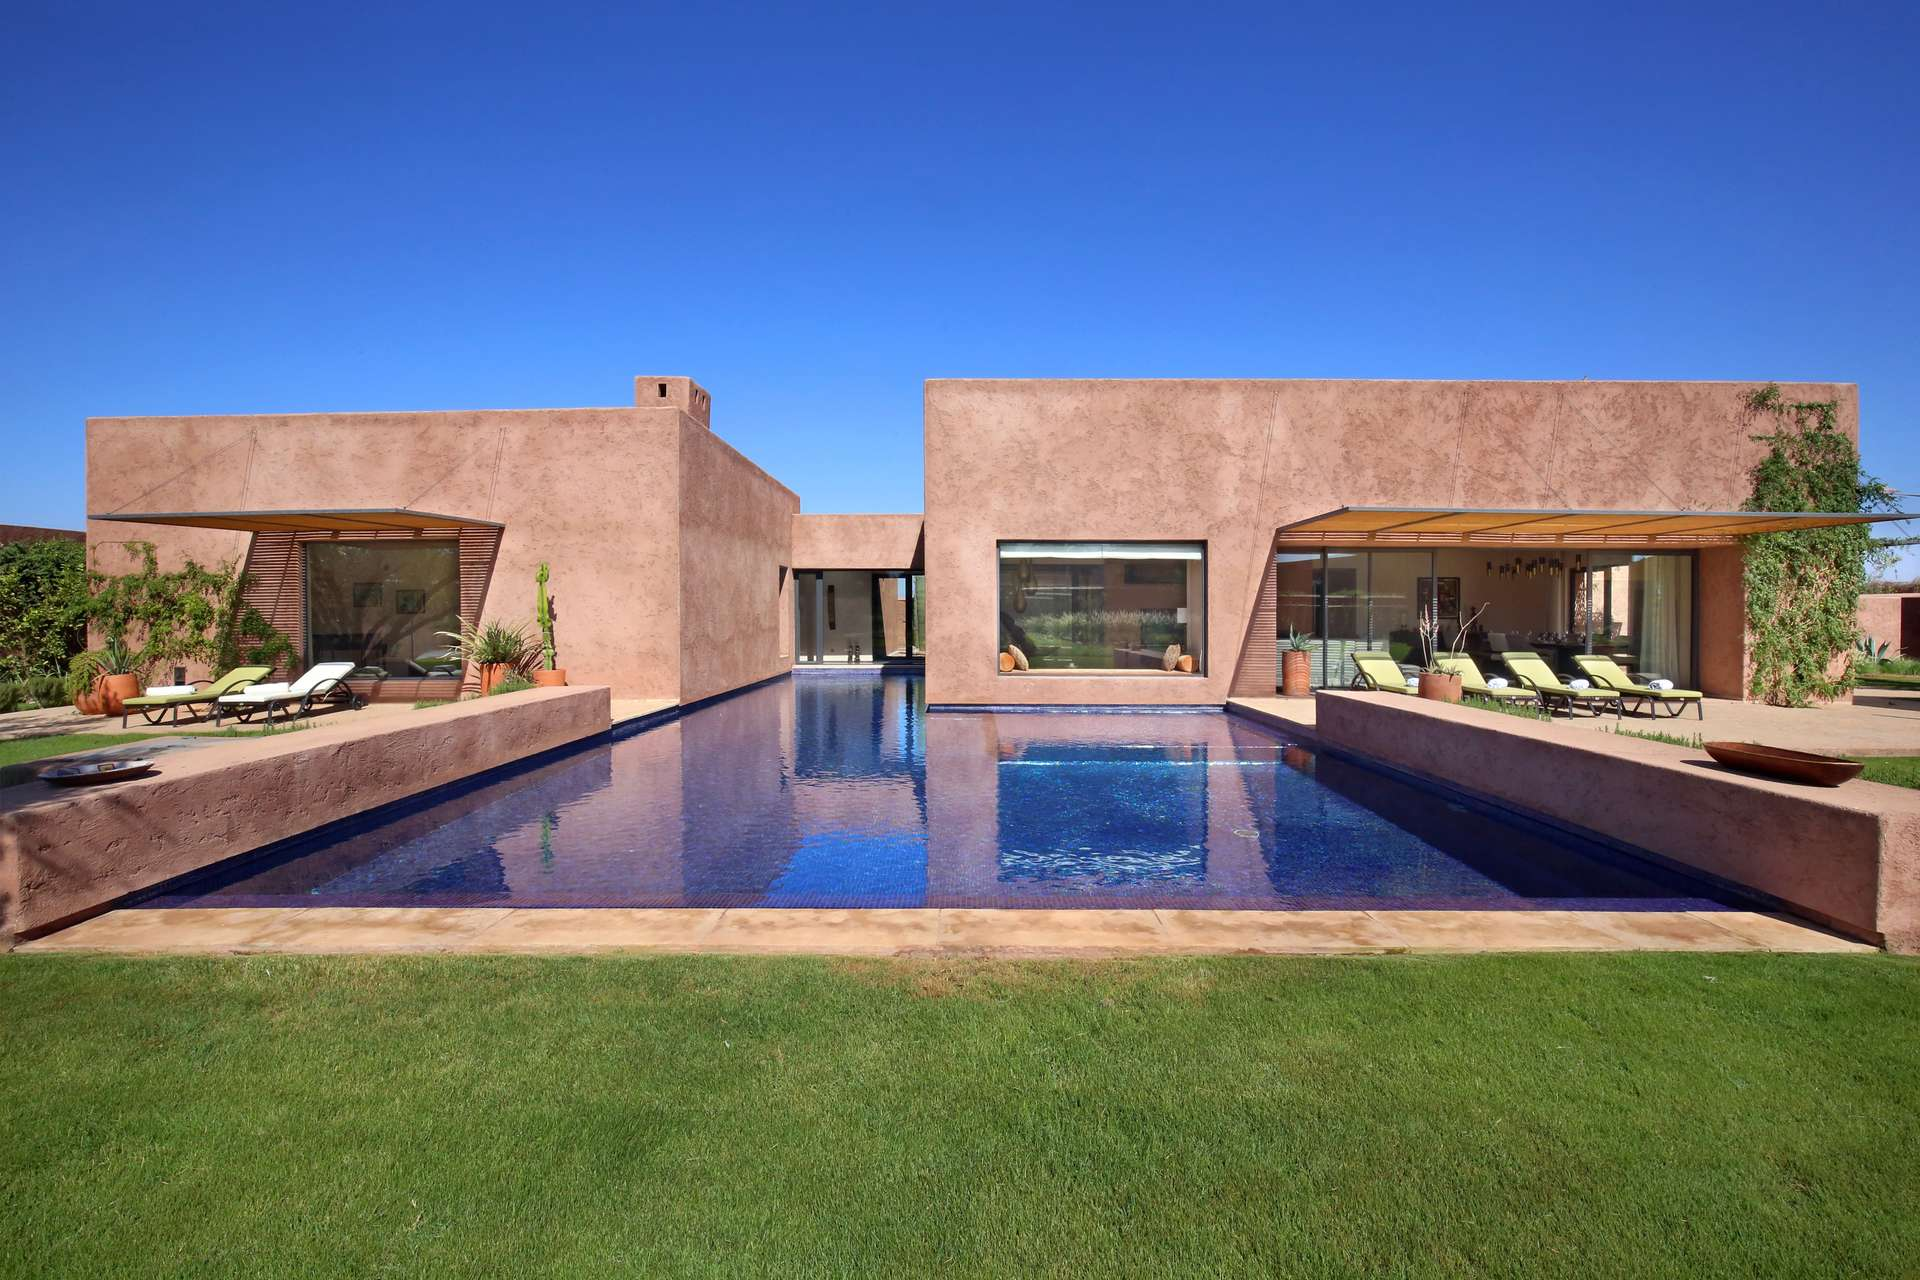 Luxury villa rentals africa - Morocco - Marrakesh - No location 4 - Tamilla - Image 1/15